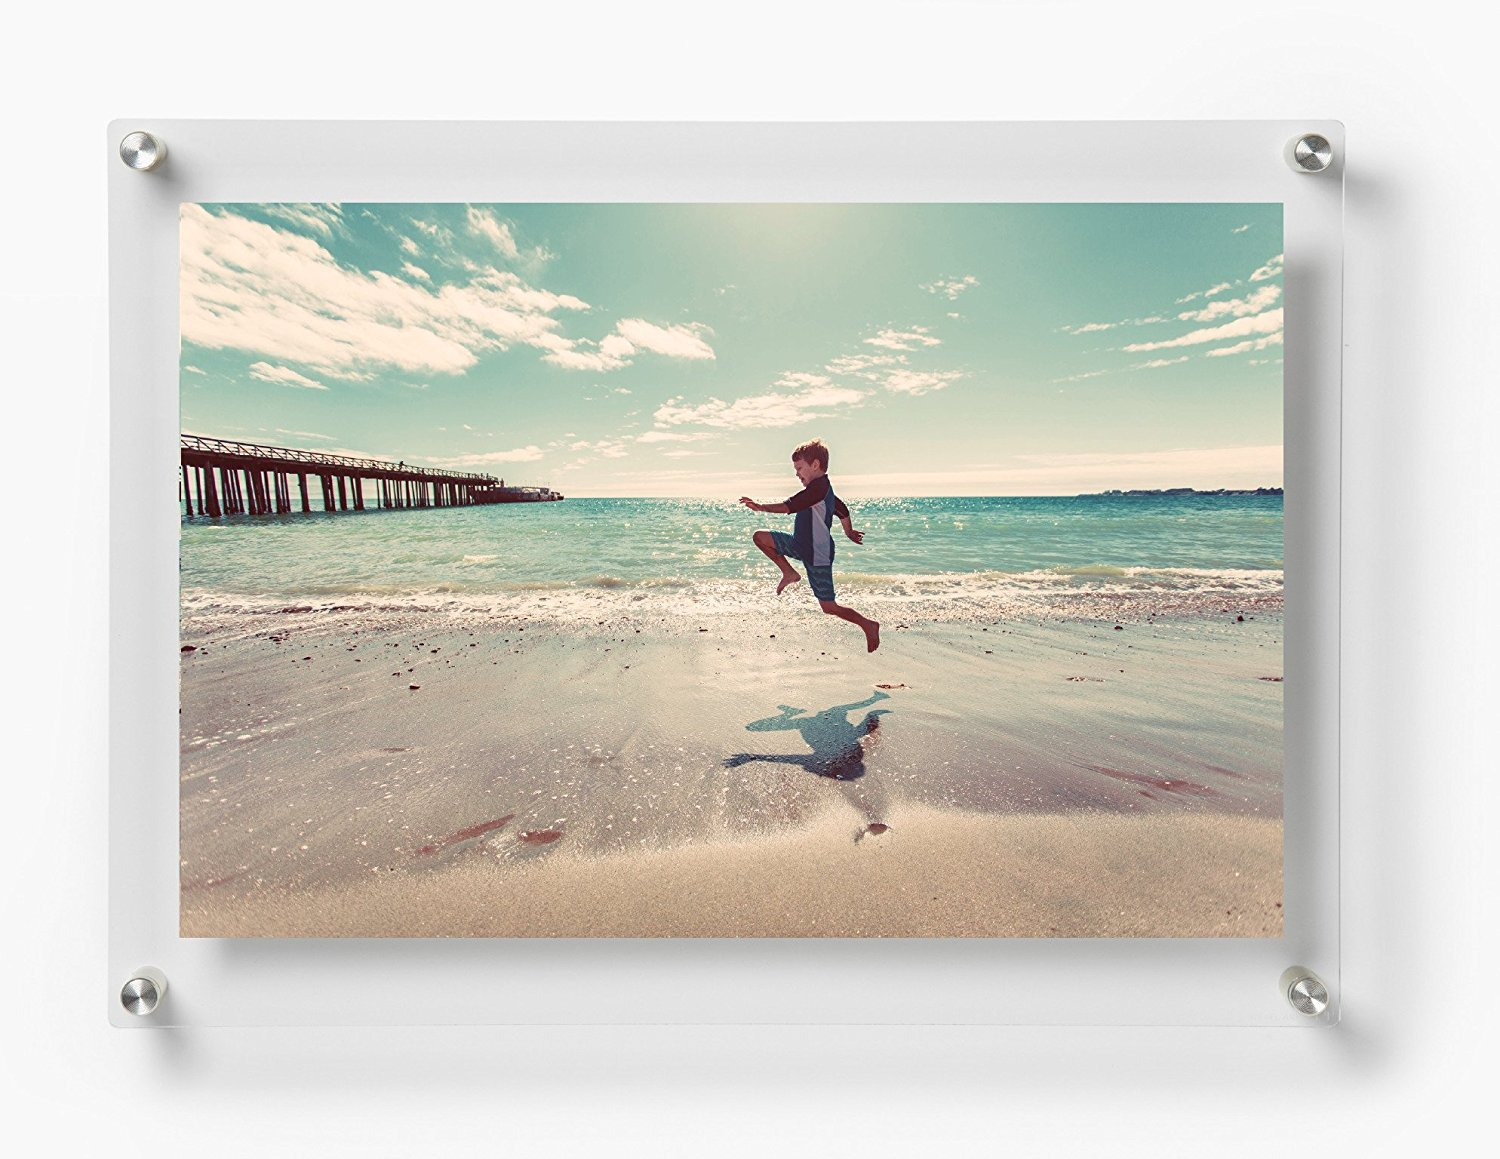 Wexel Art 19x23-Inch Double Panel Framing Grade Acrylic Floating Frame with Silver Hardware for 16x20-Inch Art & Photos